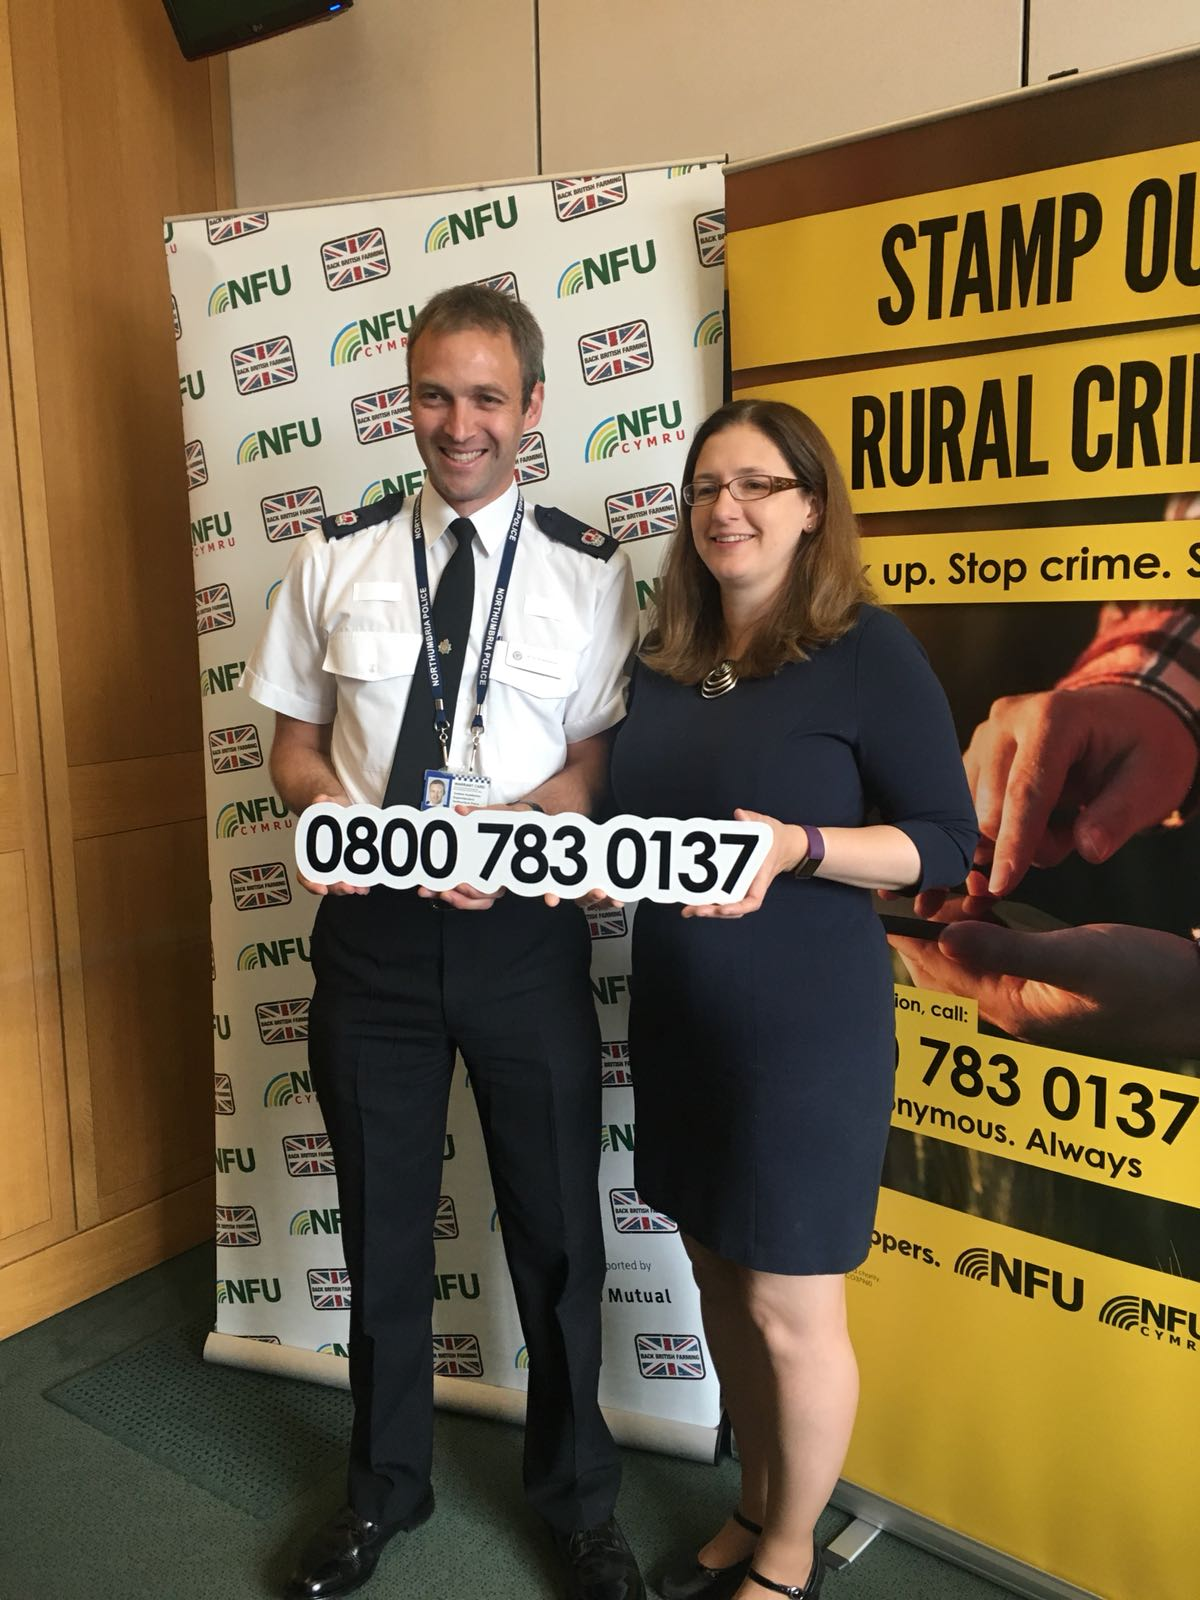 Stamp out rural crime!